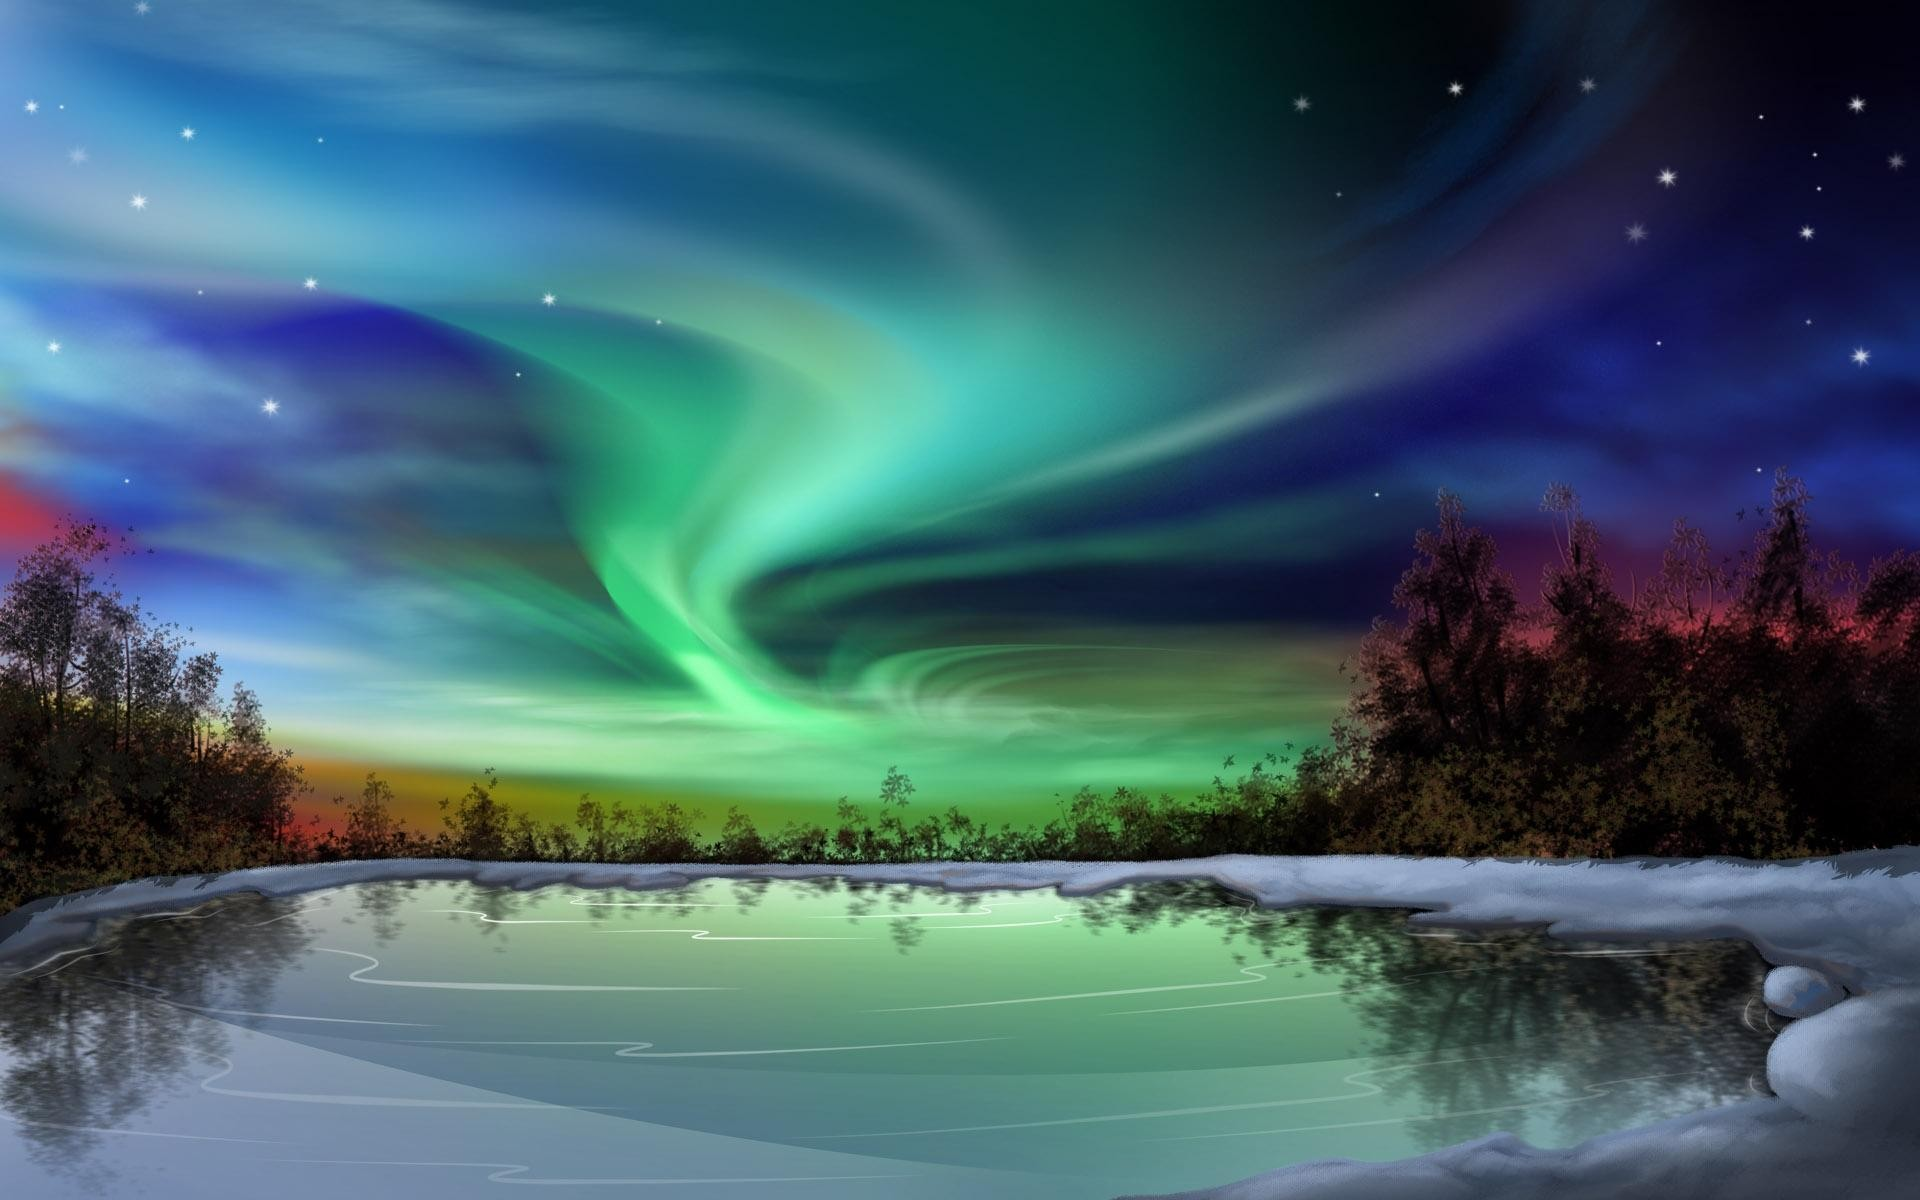 Northern Lights Wallpaper Download Free Cool High